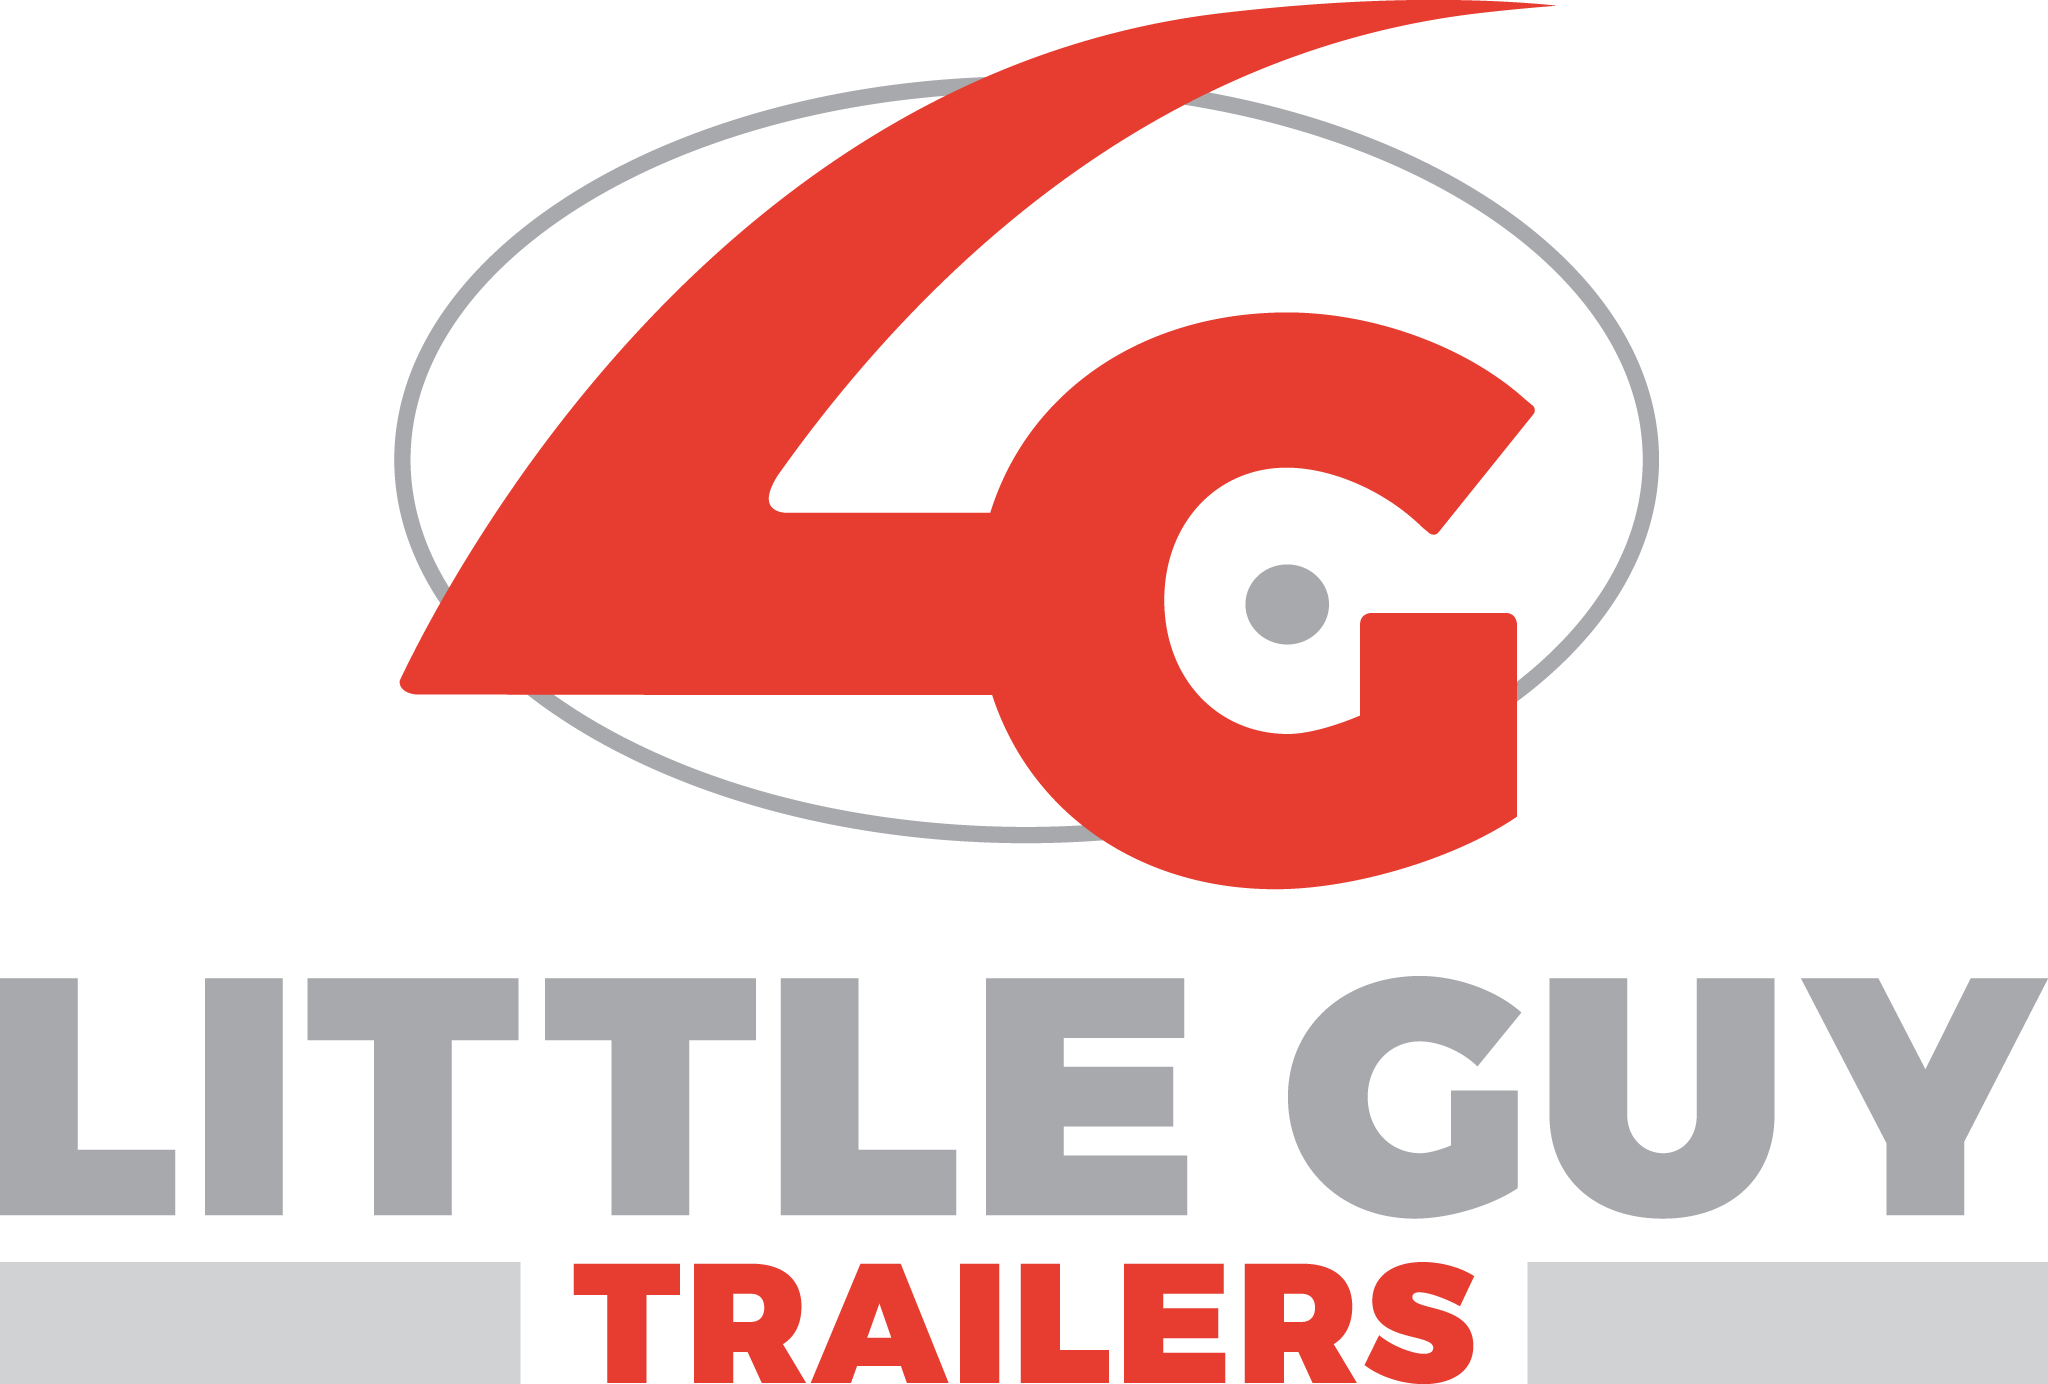 LITTLE GUY MINI MAX Teardrop Trailer Logo